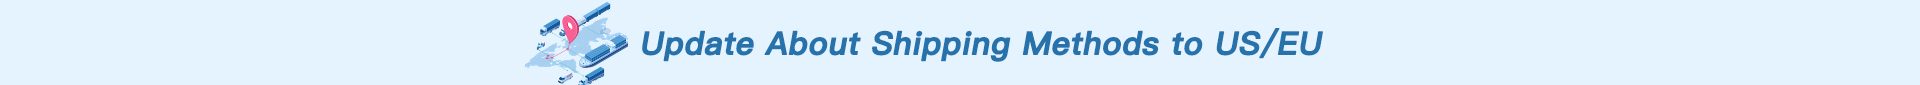 shipping methods to US and EU